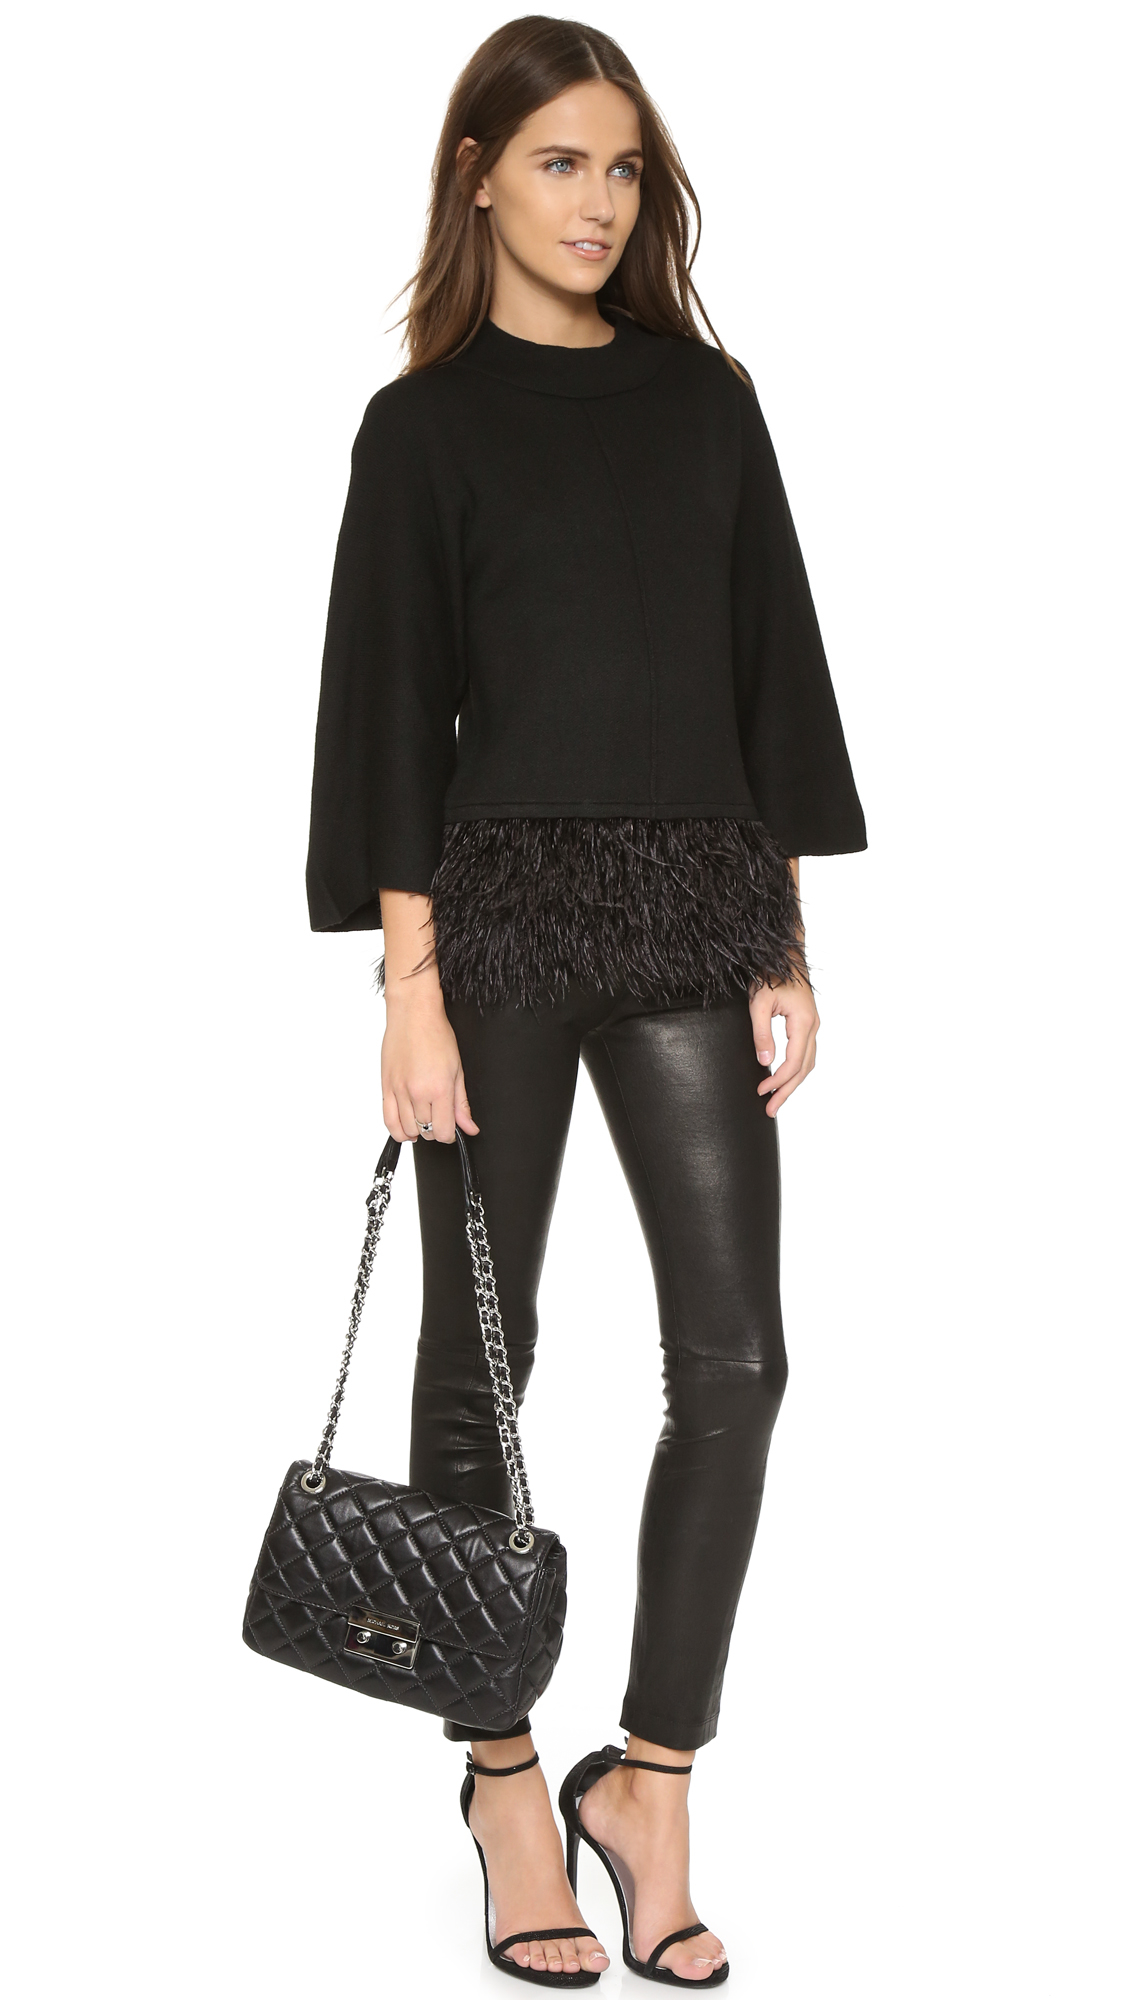 ac4f1eefe Gallery. Previously sold at: Shopbop · Women's MICHAEL Michael Kors Sloan  Bags